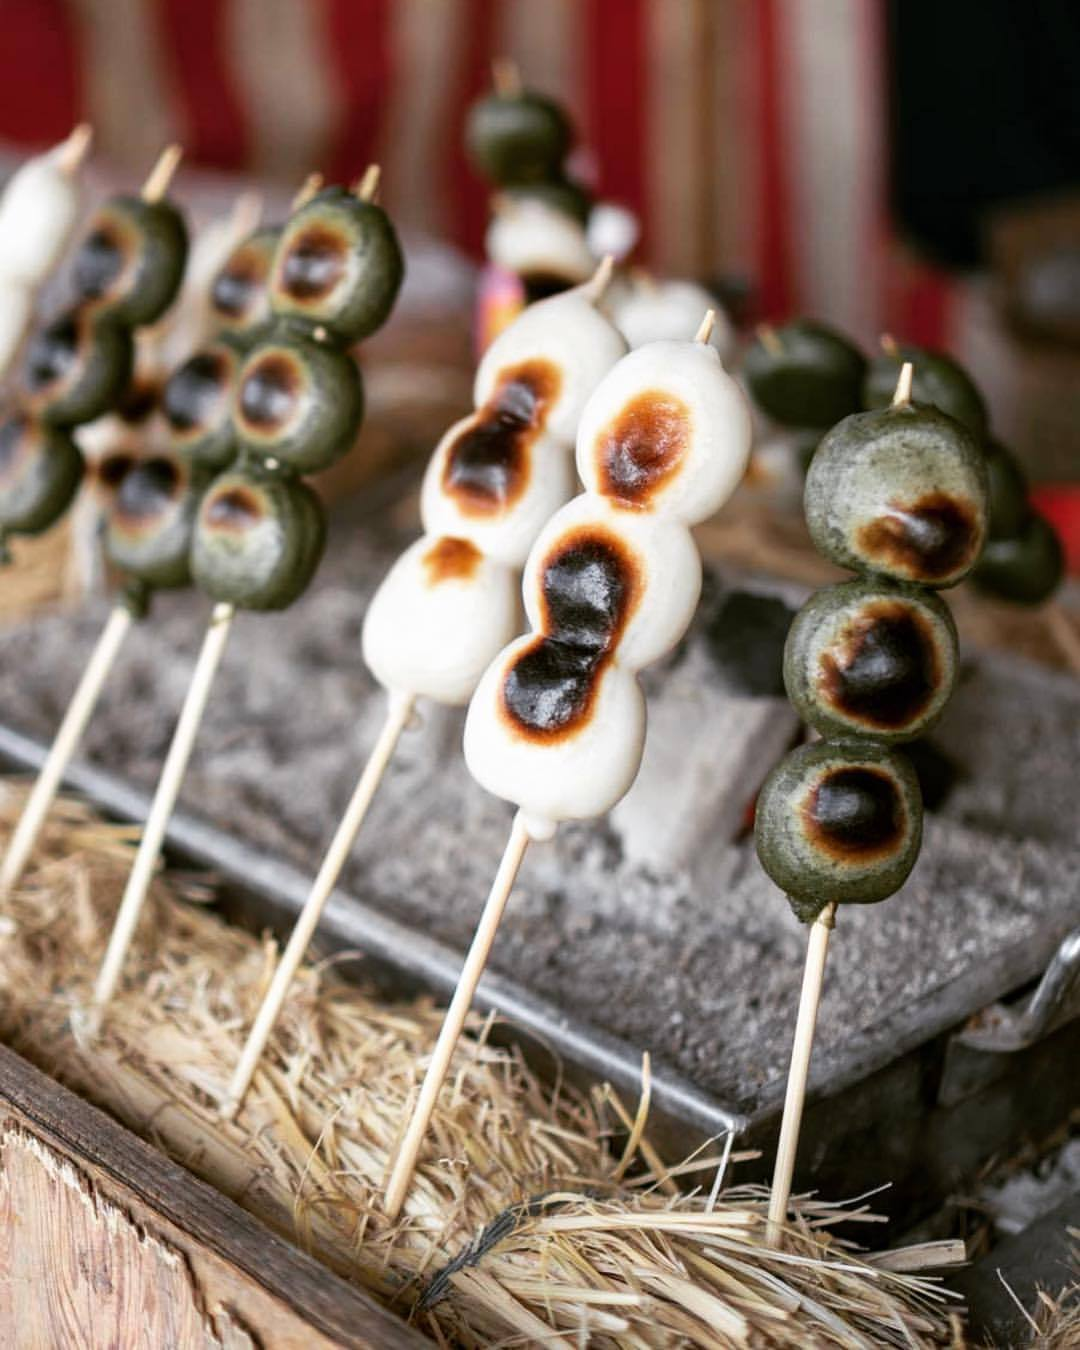 Did you ever tried grilled Dango (だんご/団子)? Spiced up with miso or soy sauce 🍡🇯🇵😋 (hier: 上野動物園 Ueno Zoological Gardens, Tokyo)